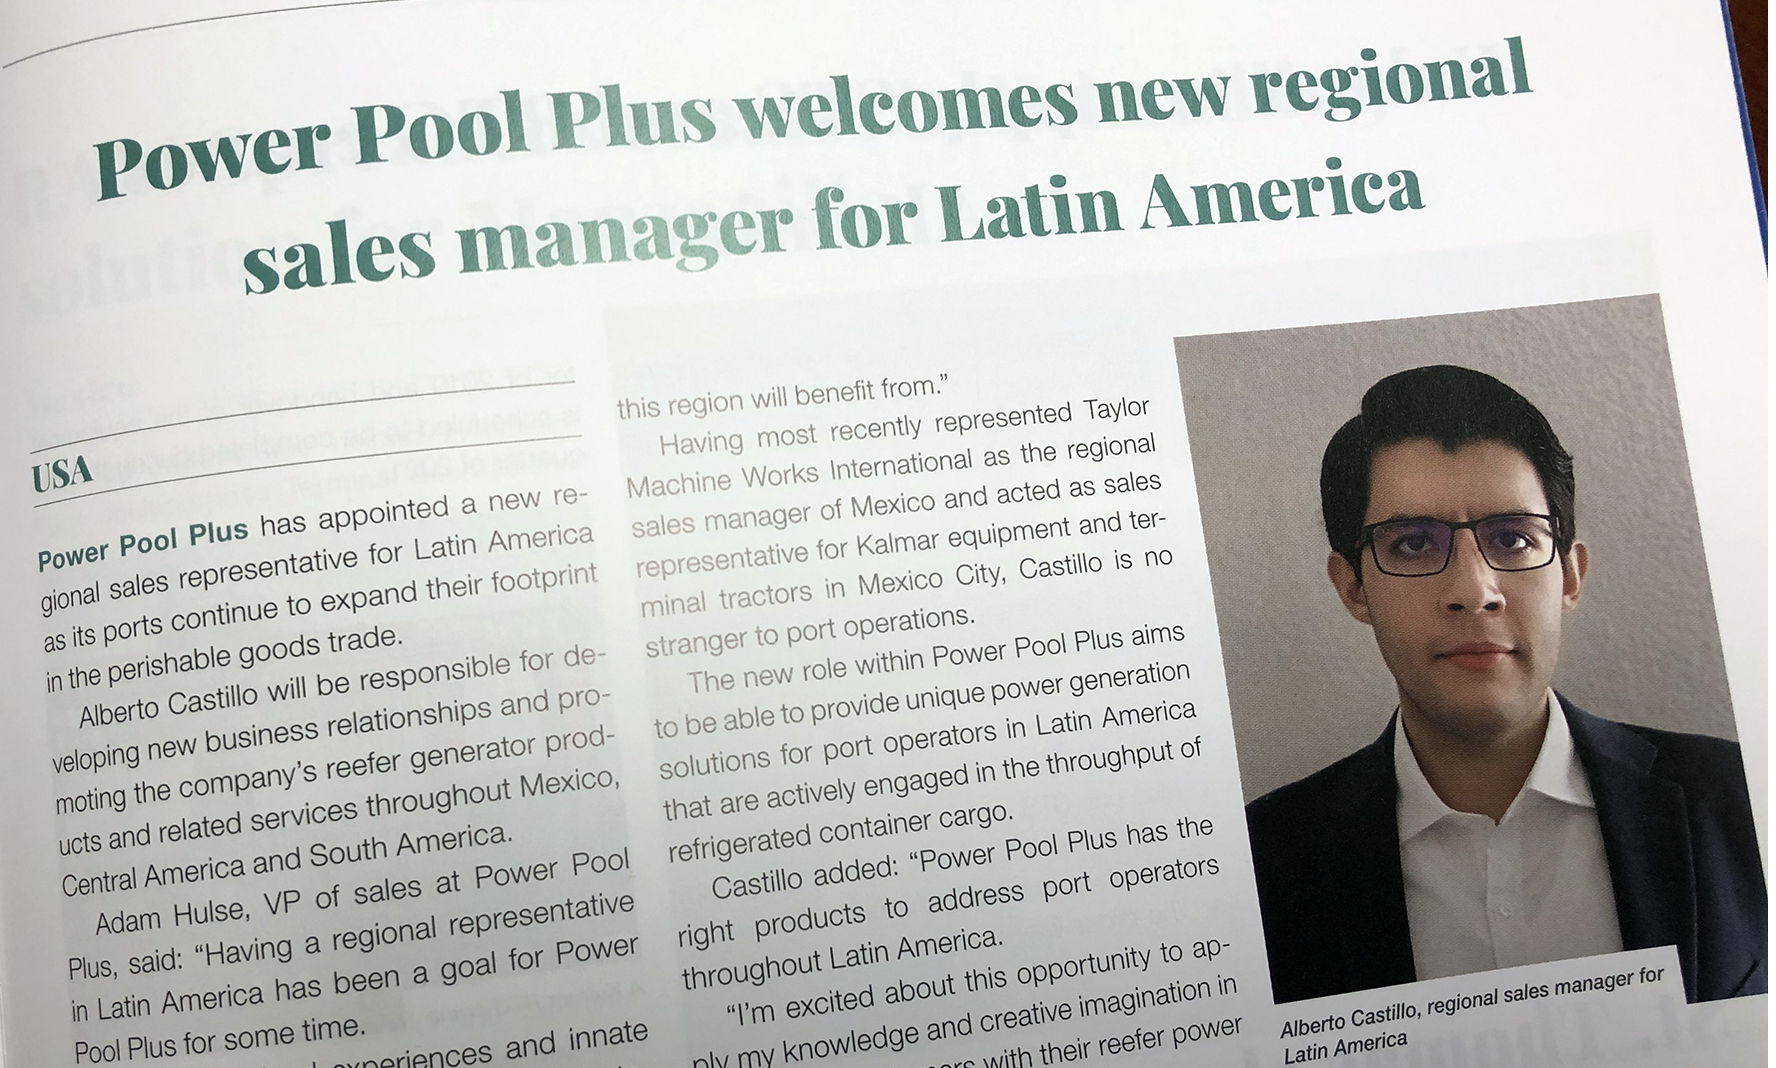 Alberto Castillo Joins Power Pool Plus